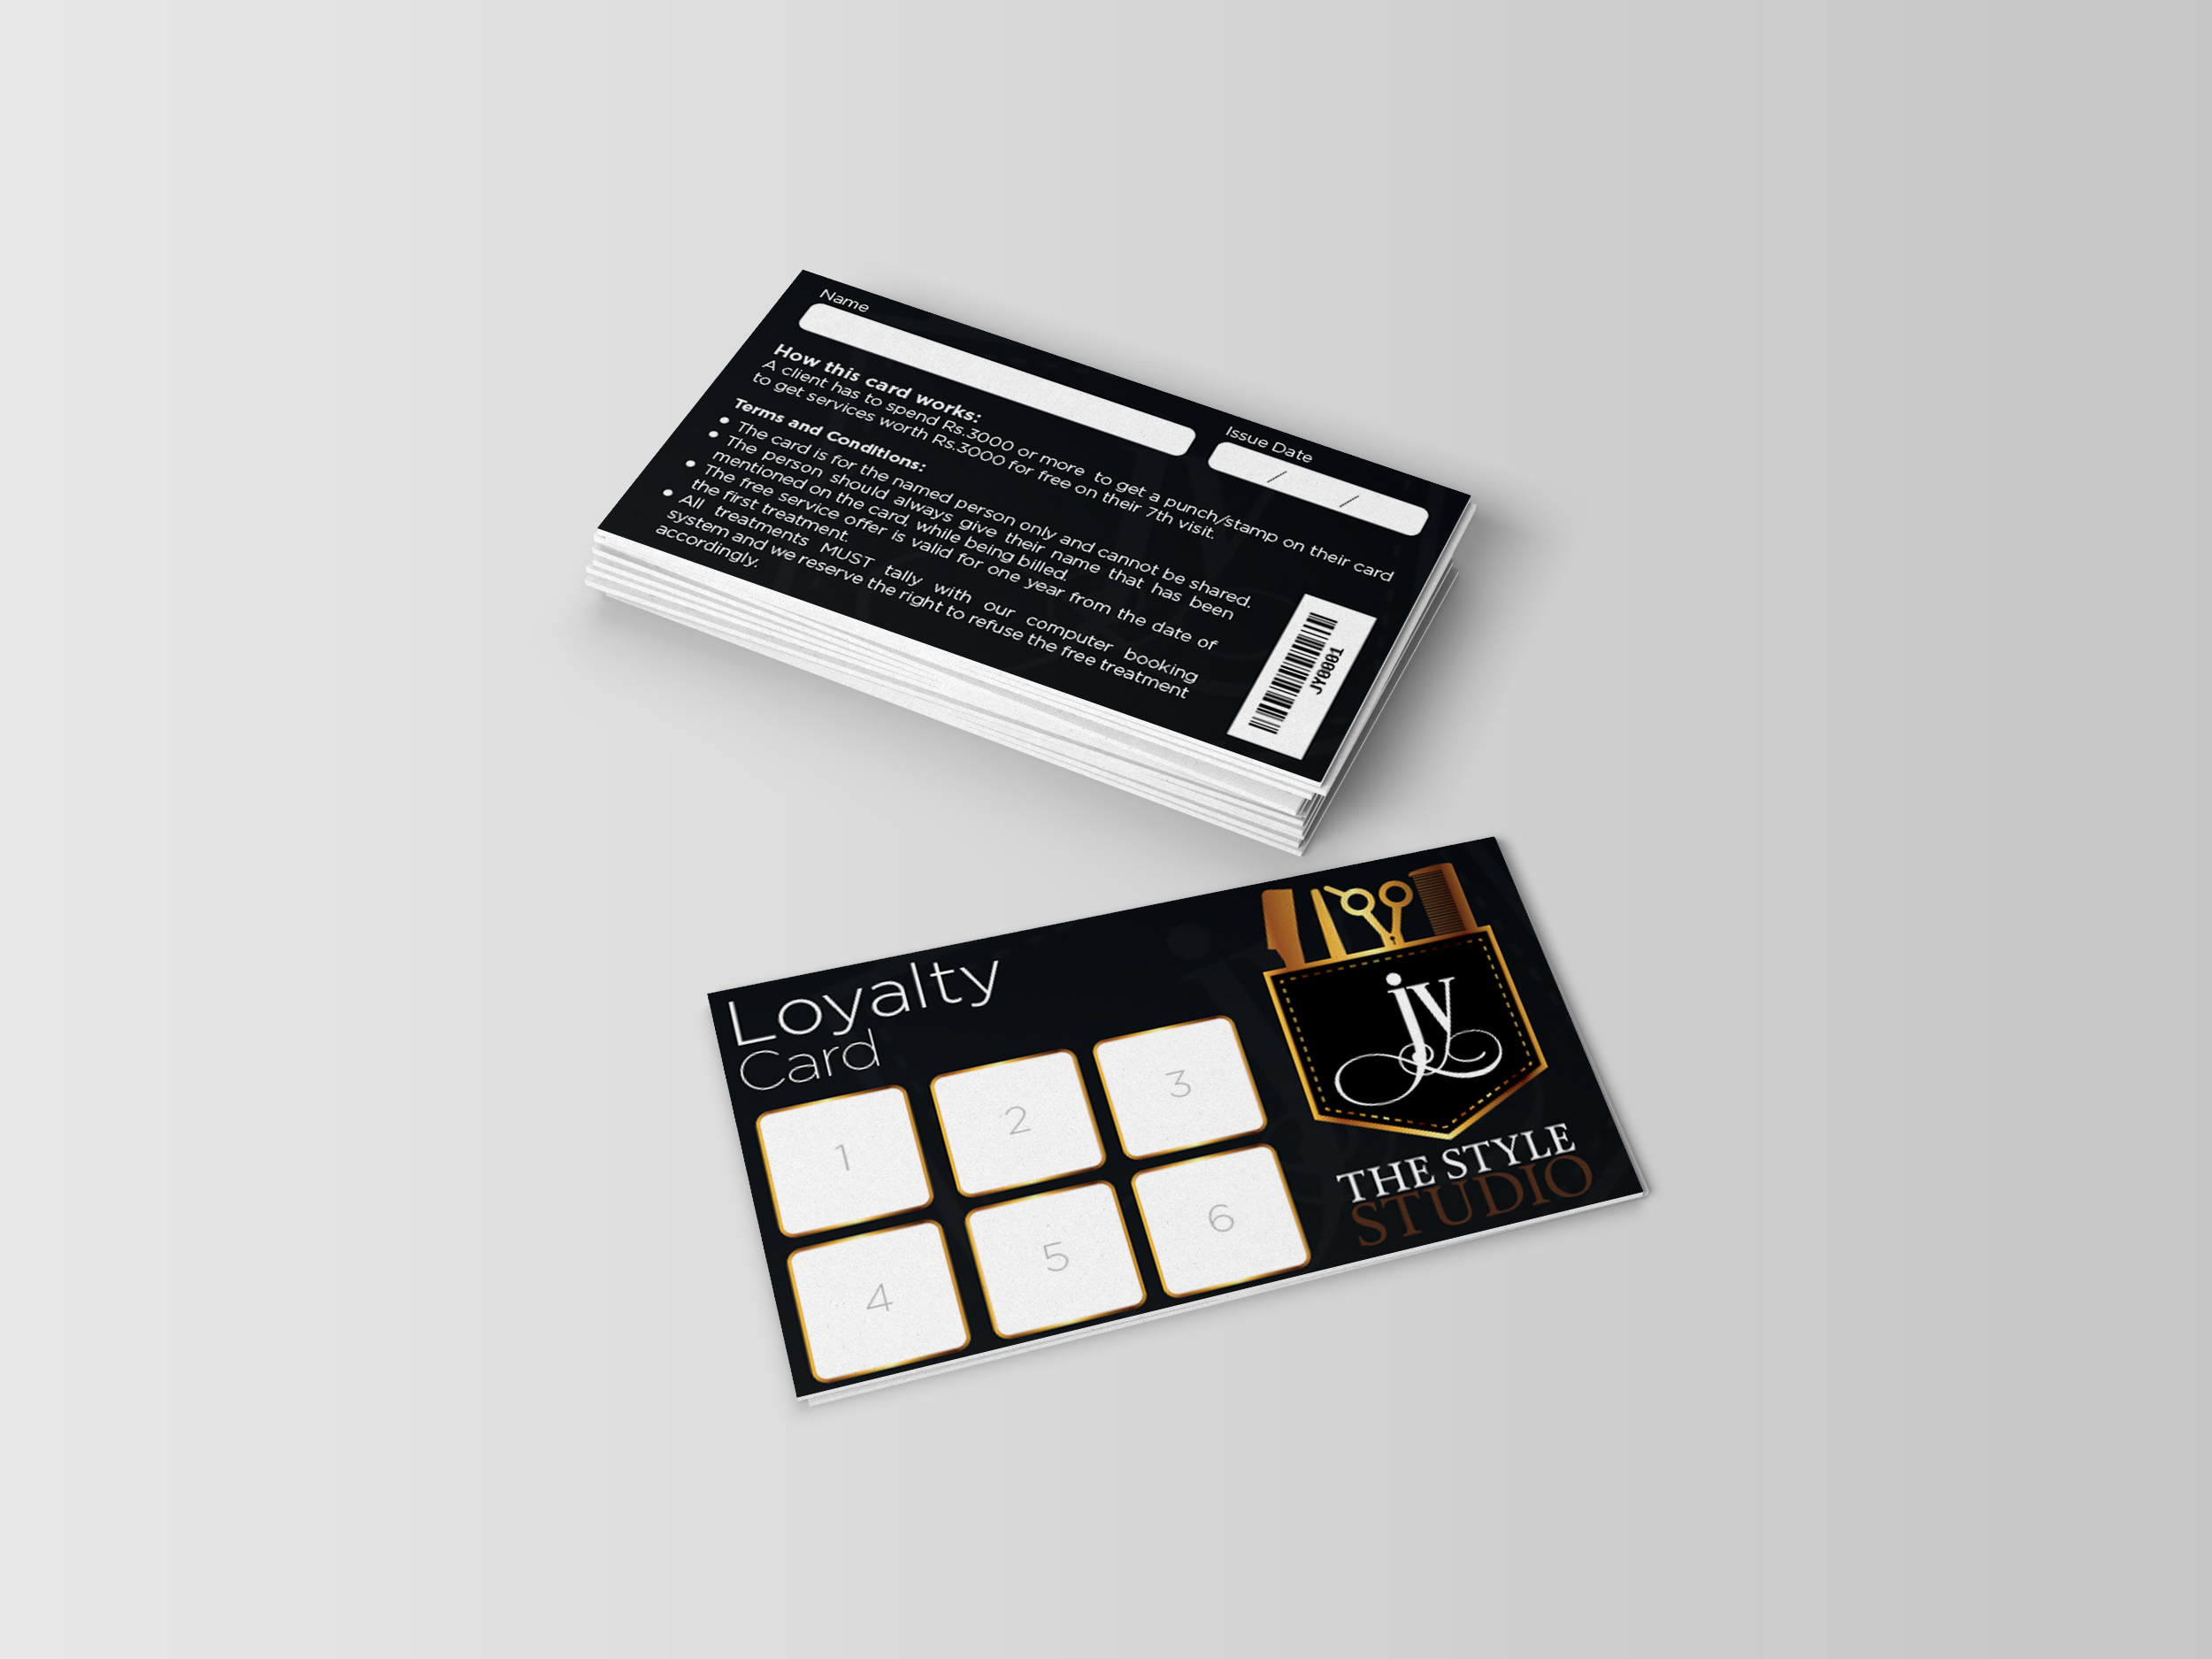 JY Loyalty Card